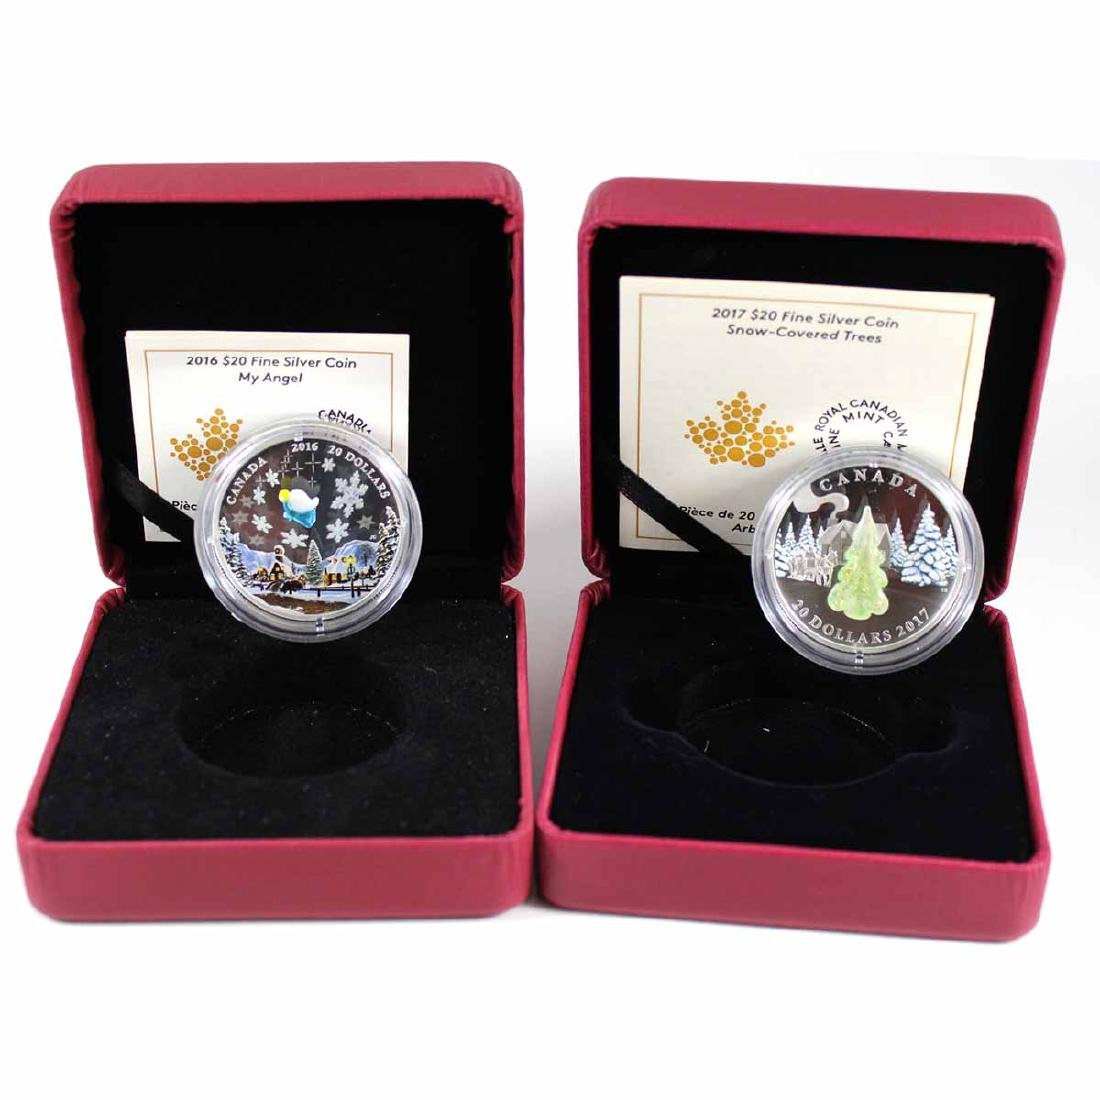 2016 Canada $20 My Angel (light scratches on capsule) &